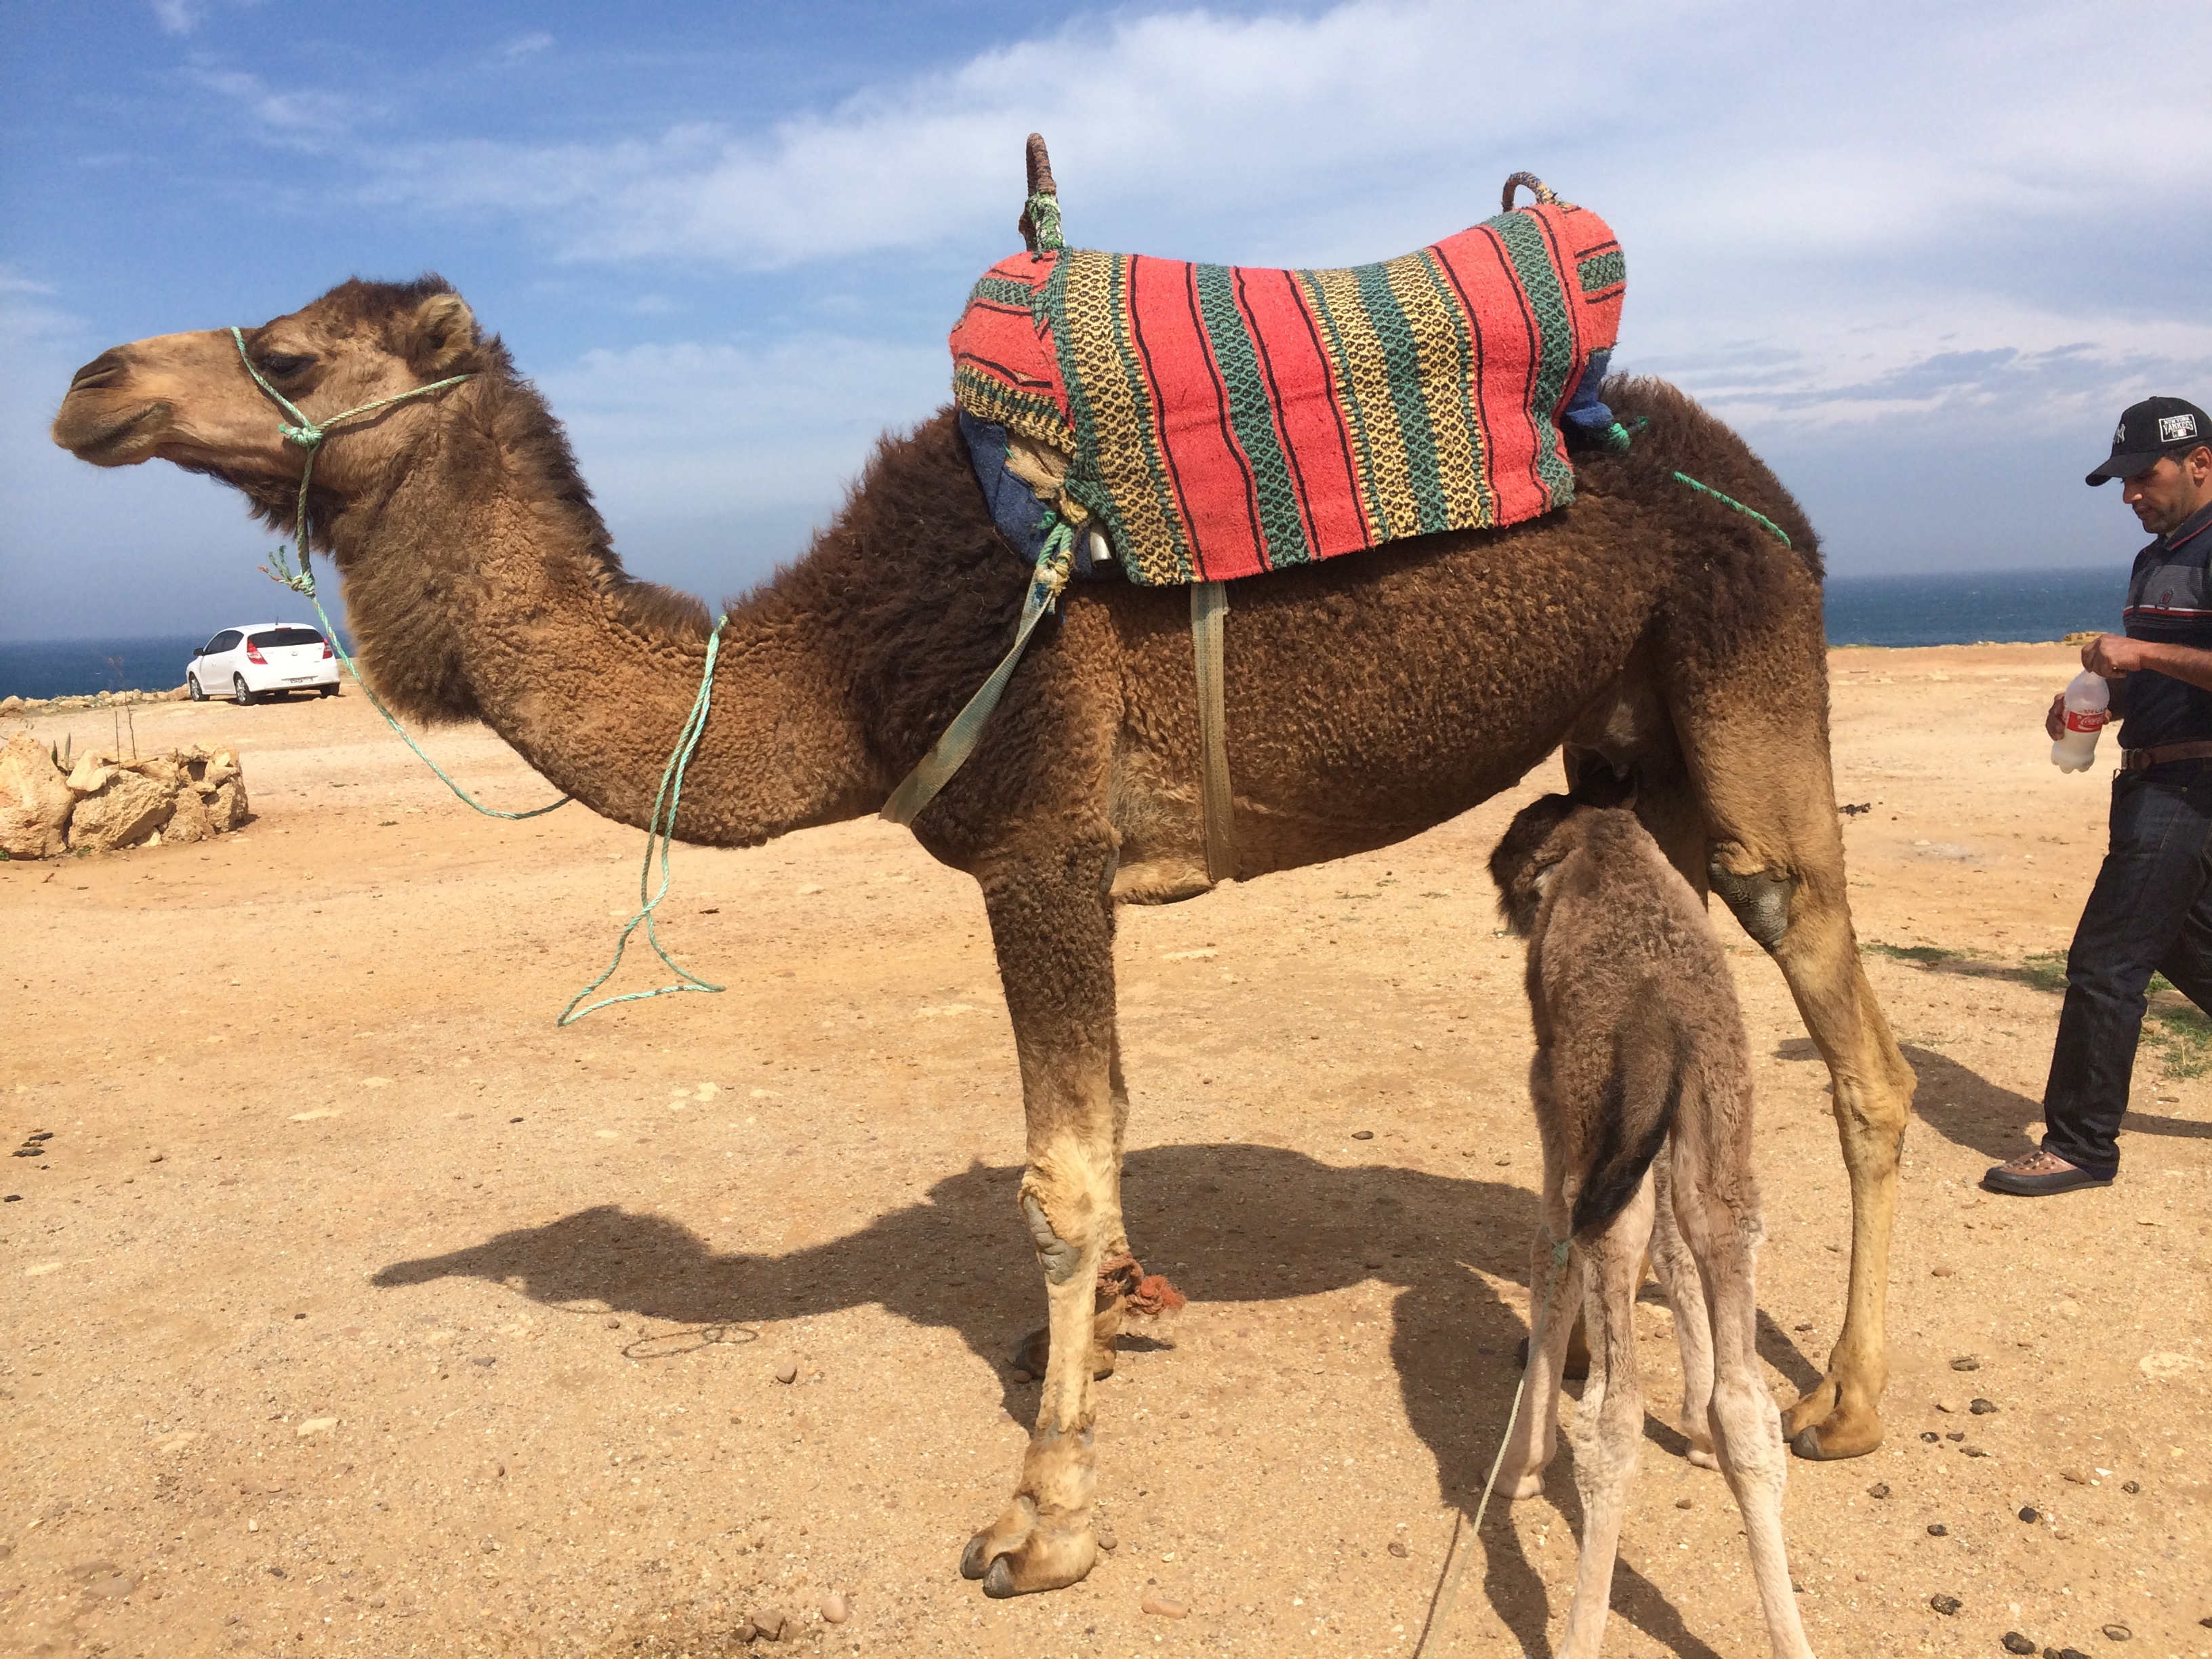 A camel and her calf in Tangiers, Morocco, April 2014   Photo by Kat Dayton, St. George News